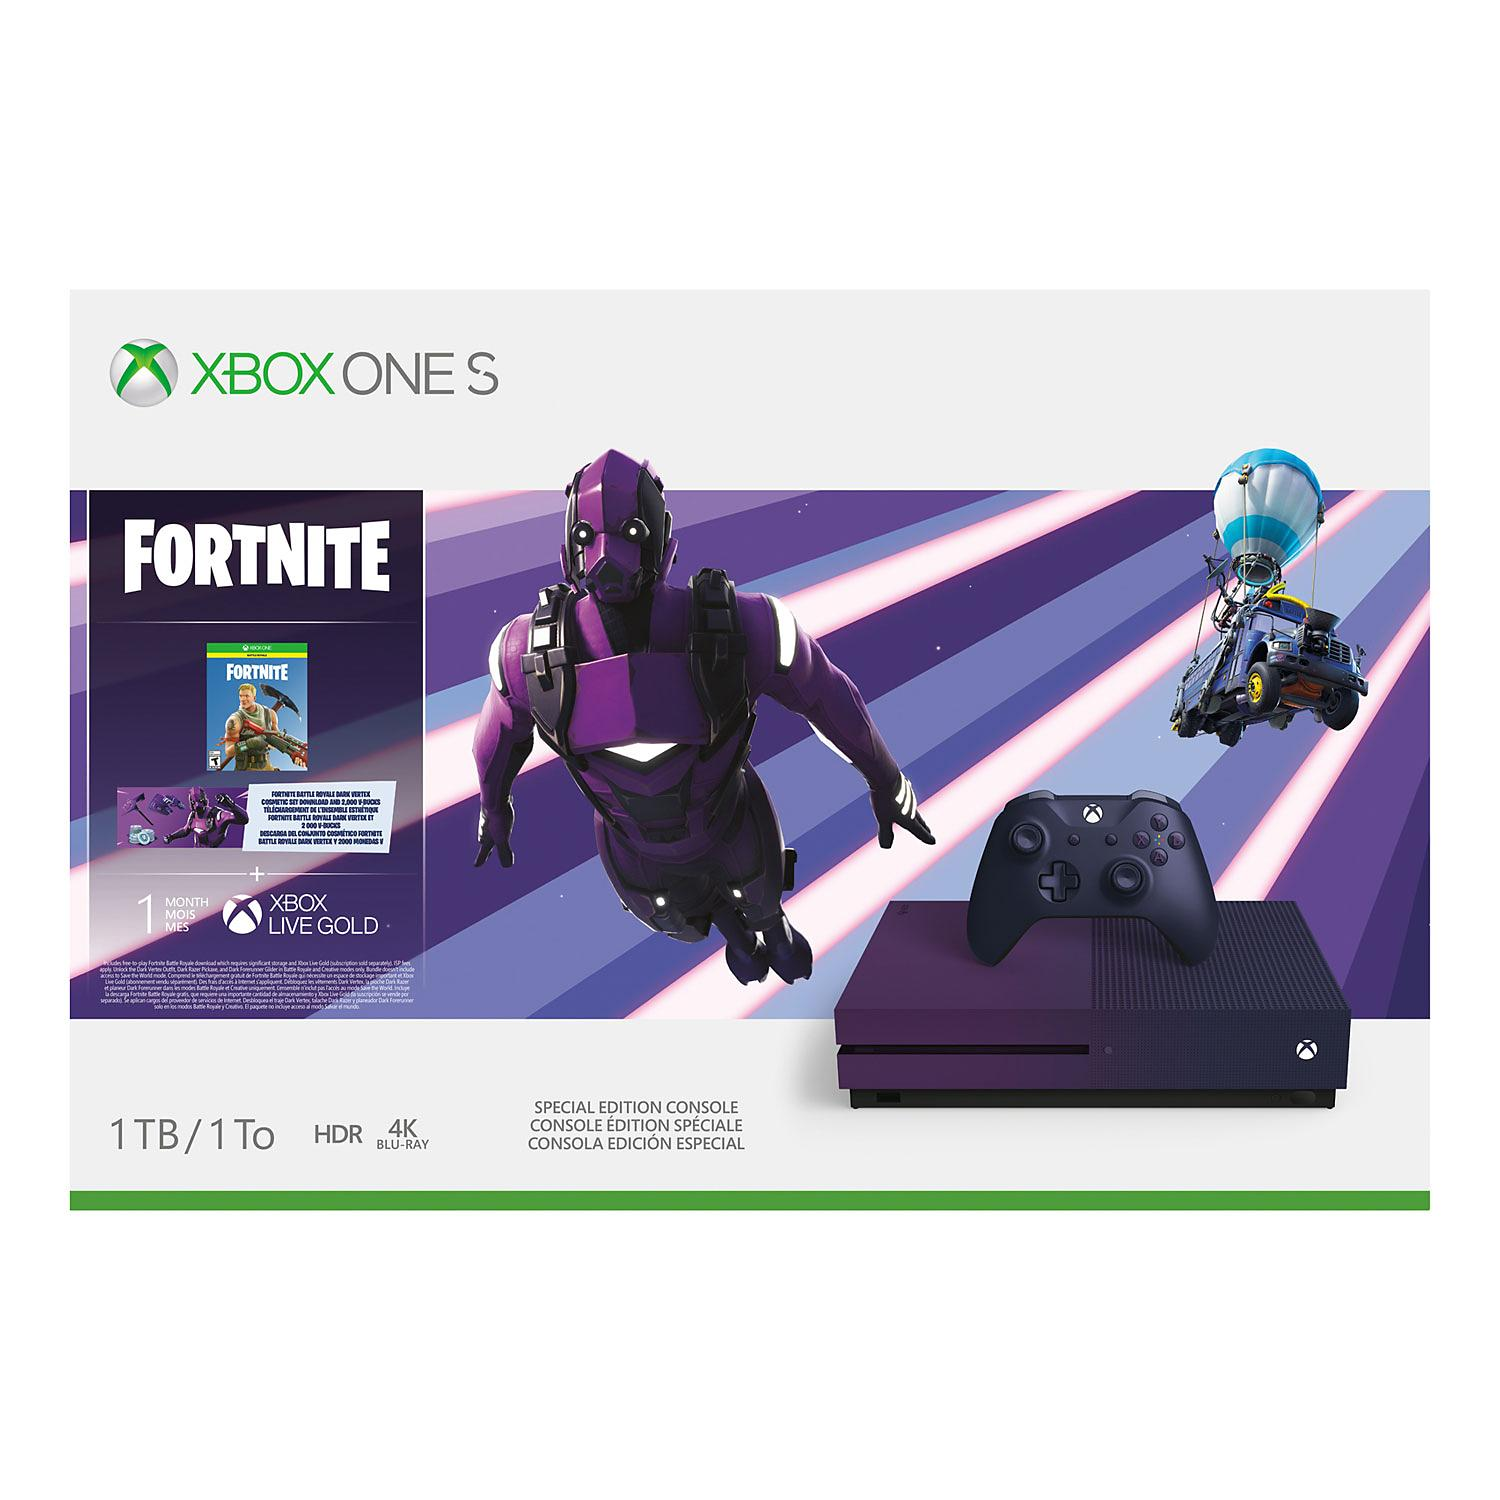 Microsoft Xbox One S Model Xbox One S 1tb Fortnite Bundle Basham S Fortnite xbox one community has 41,622 members. microsoft xbox one s model xbox one s 1tb fortnite bundle